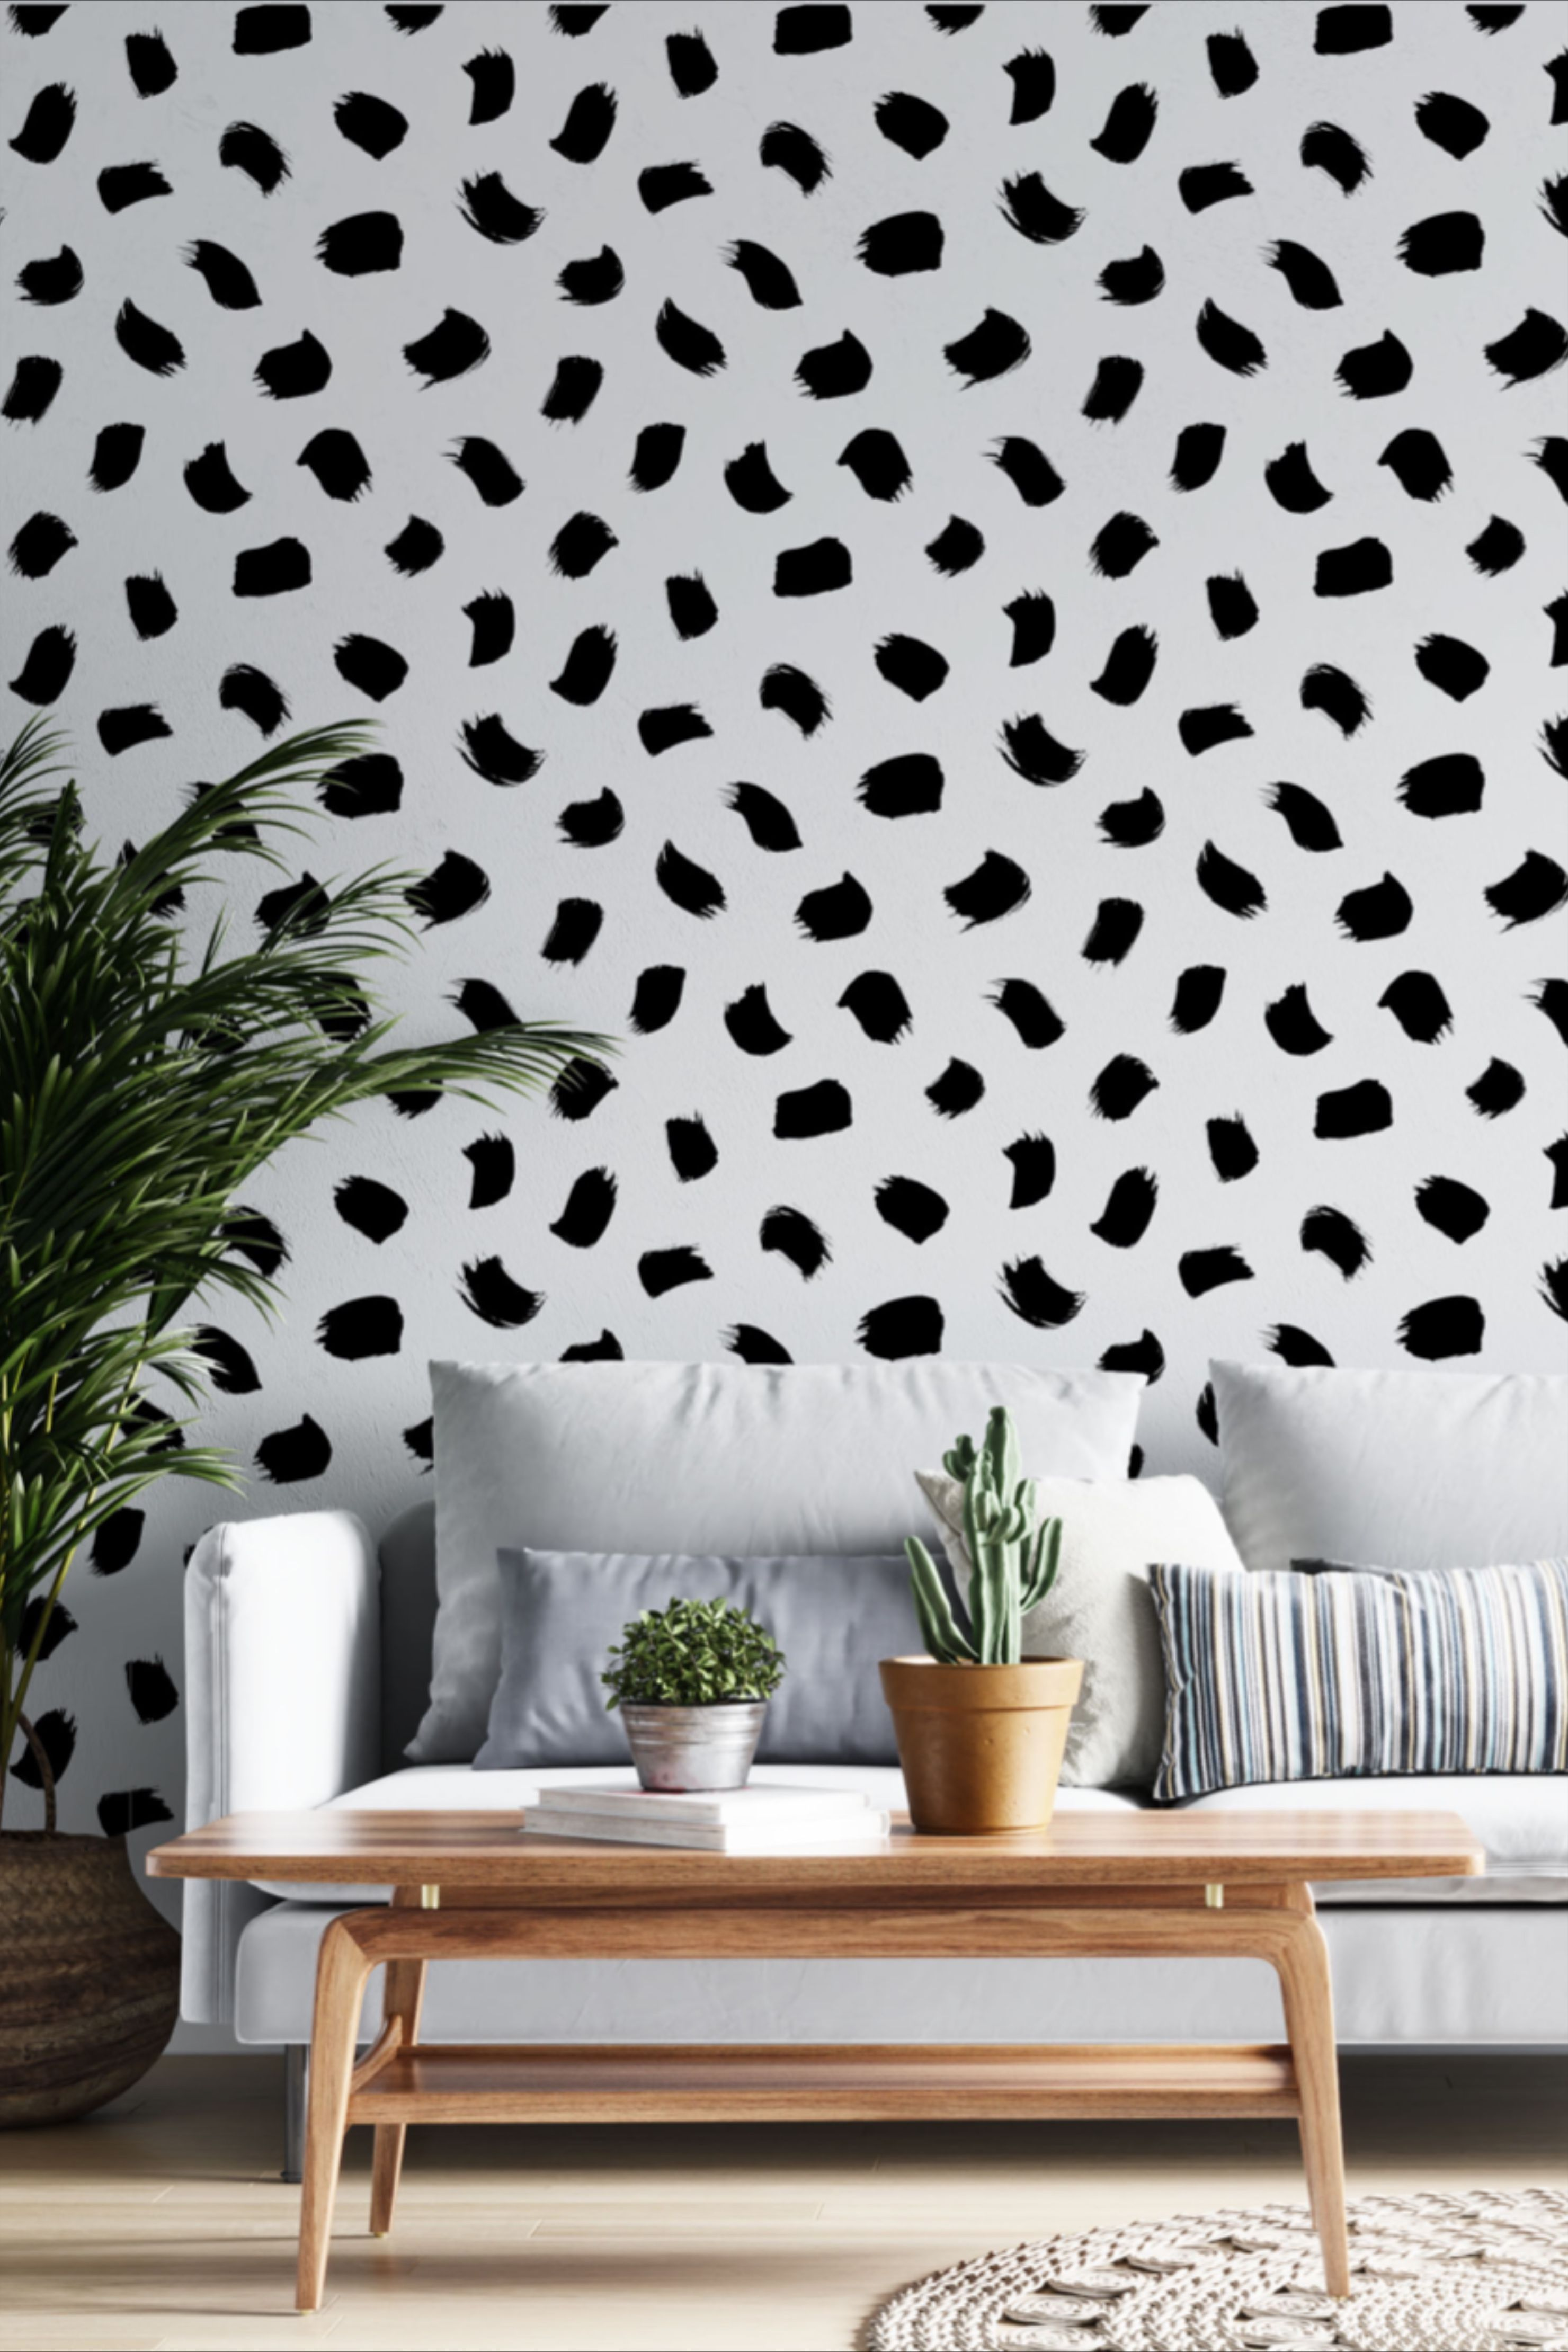 Black And White Brush Stroke Wallpaper Peel And Stick Watercolor Self Adhesive Wall Covering Dalmatian Dots Wall Mural In 2021 How To Install Wallpaper Brush Strokes Diy Wallpaper